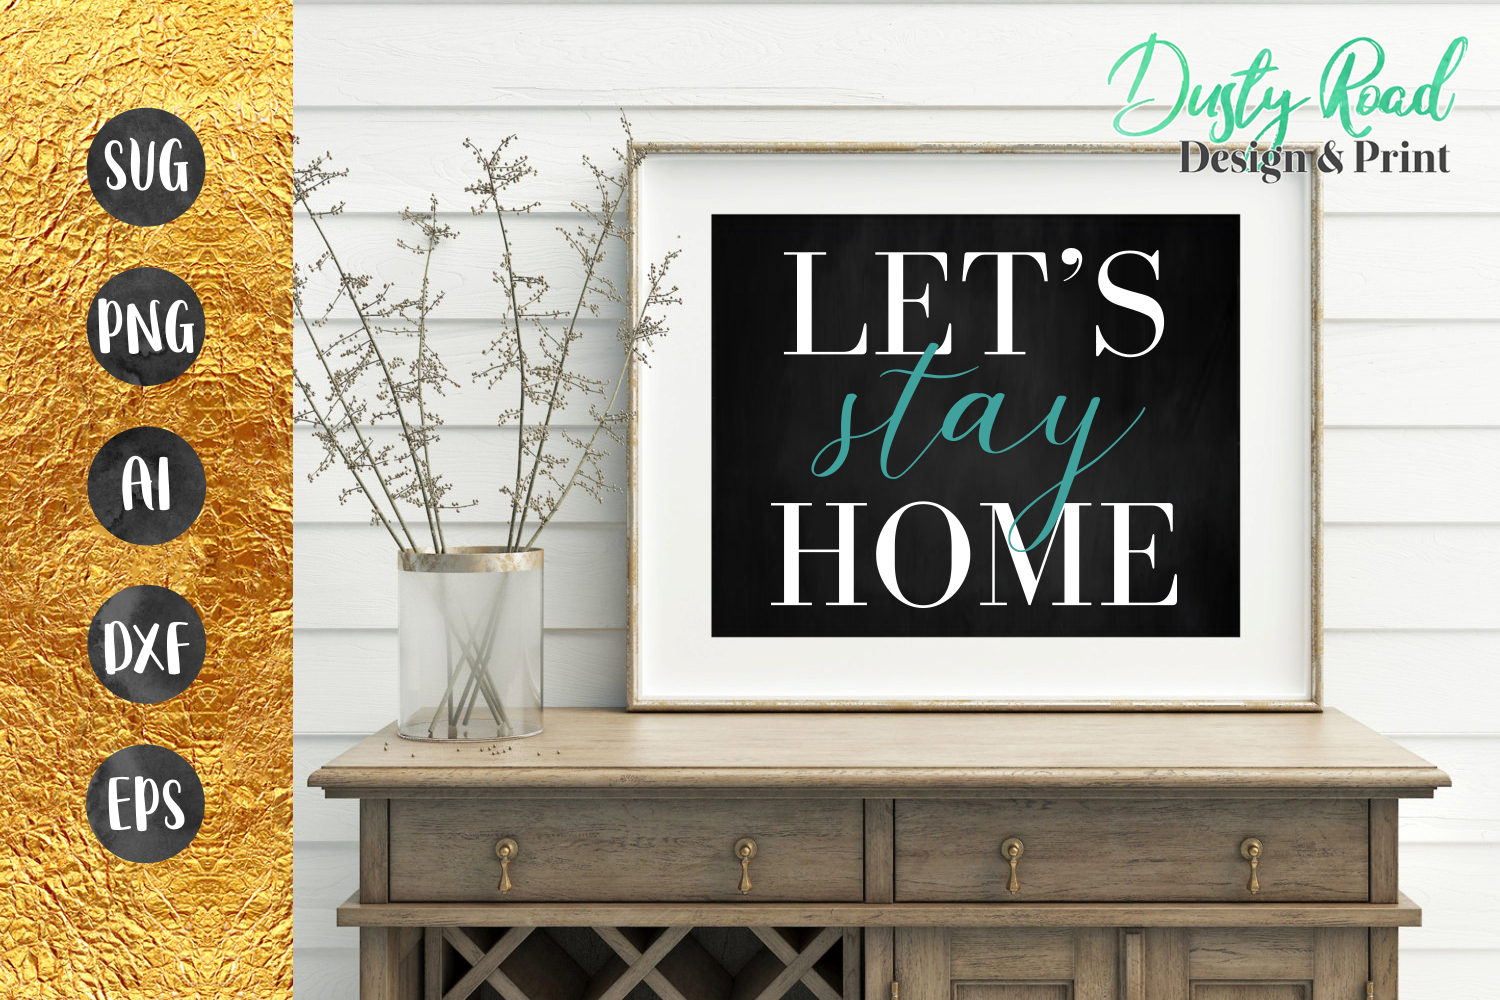 SVG & PNG - Let's Stay Home example image 1